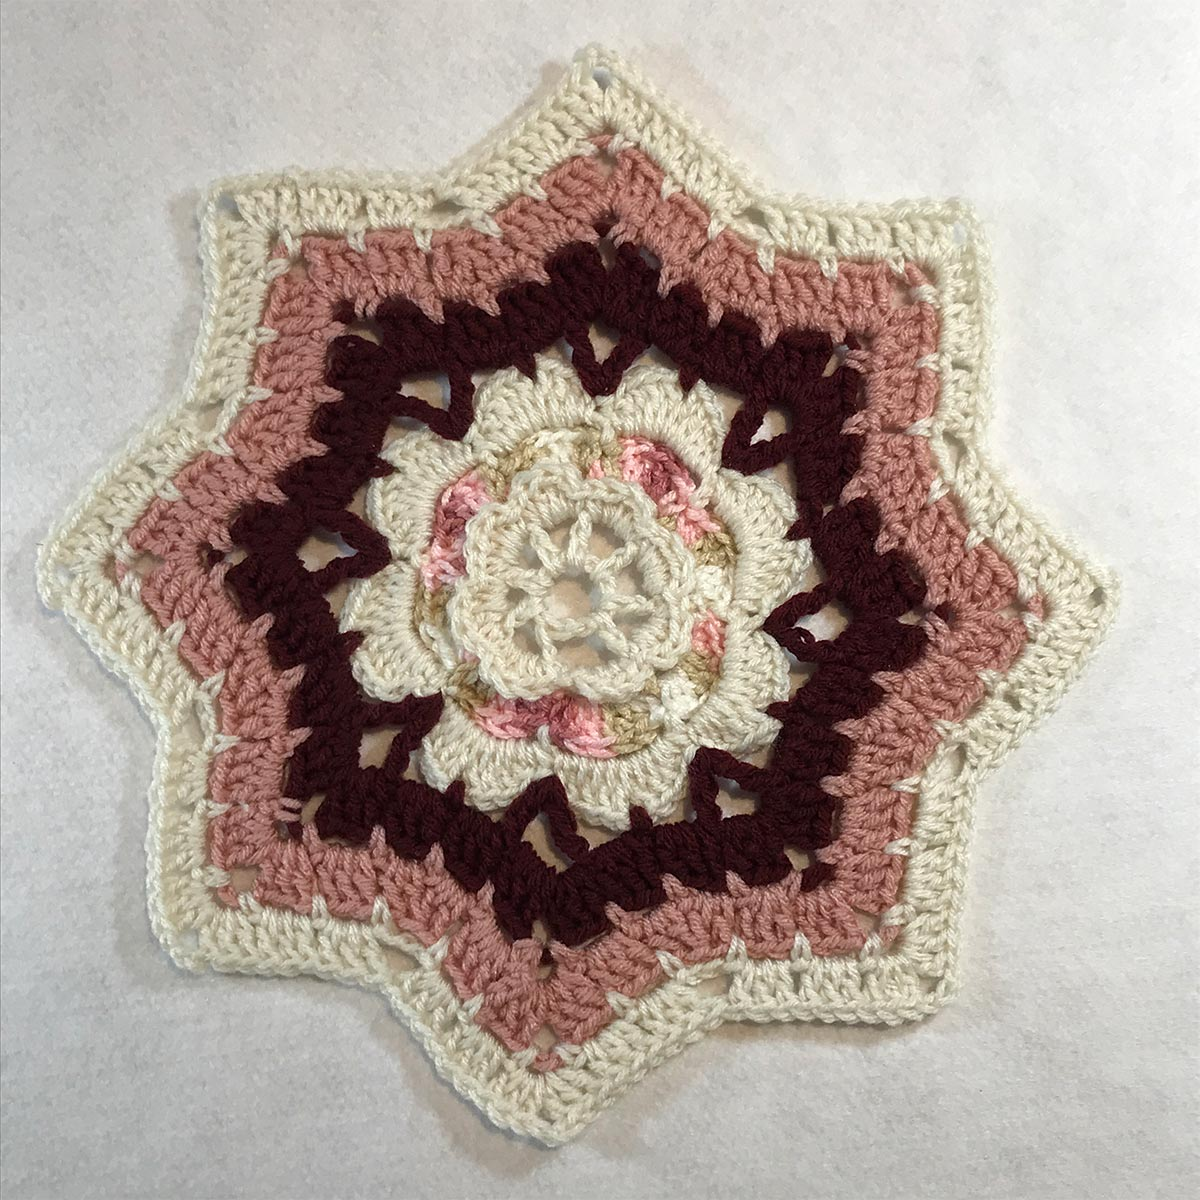 Eight-point star pattern crochet with ivory, dusty rose, maroon and pink layers.